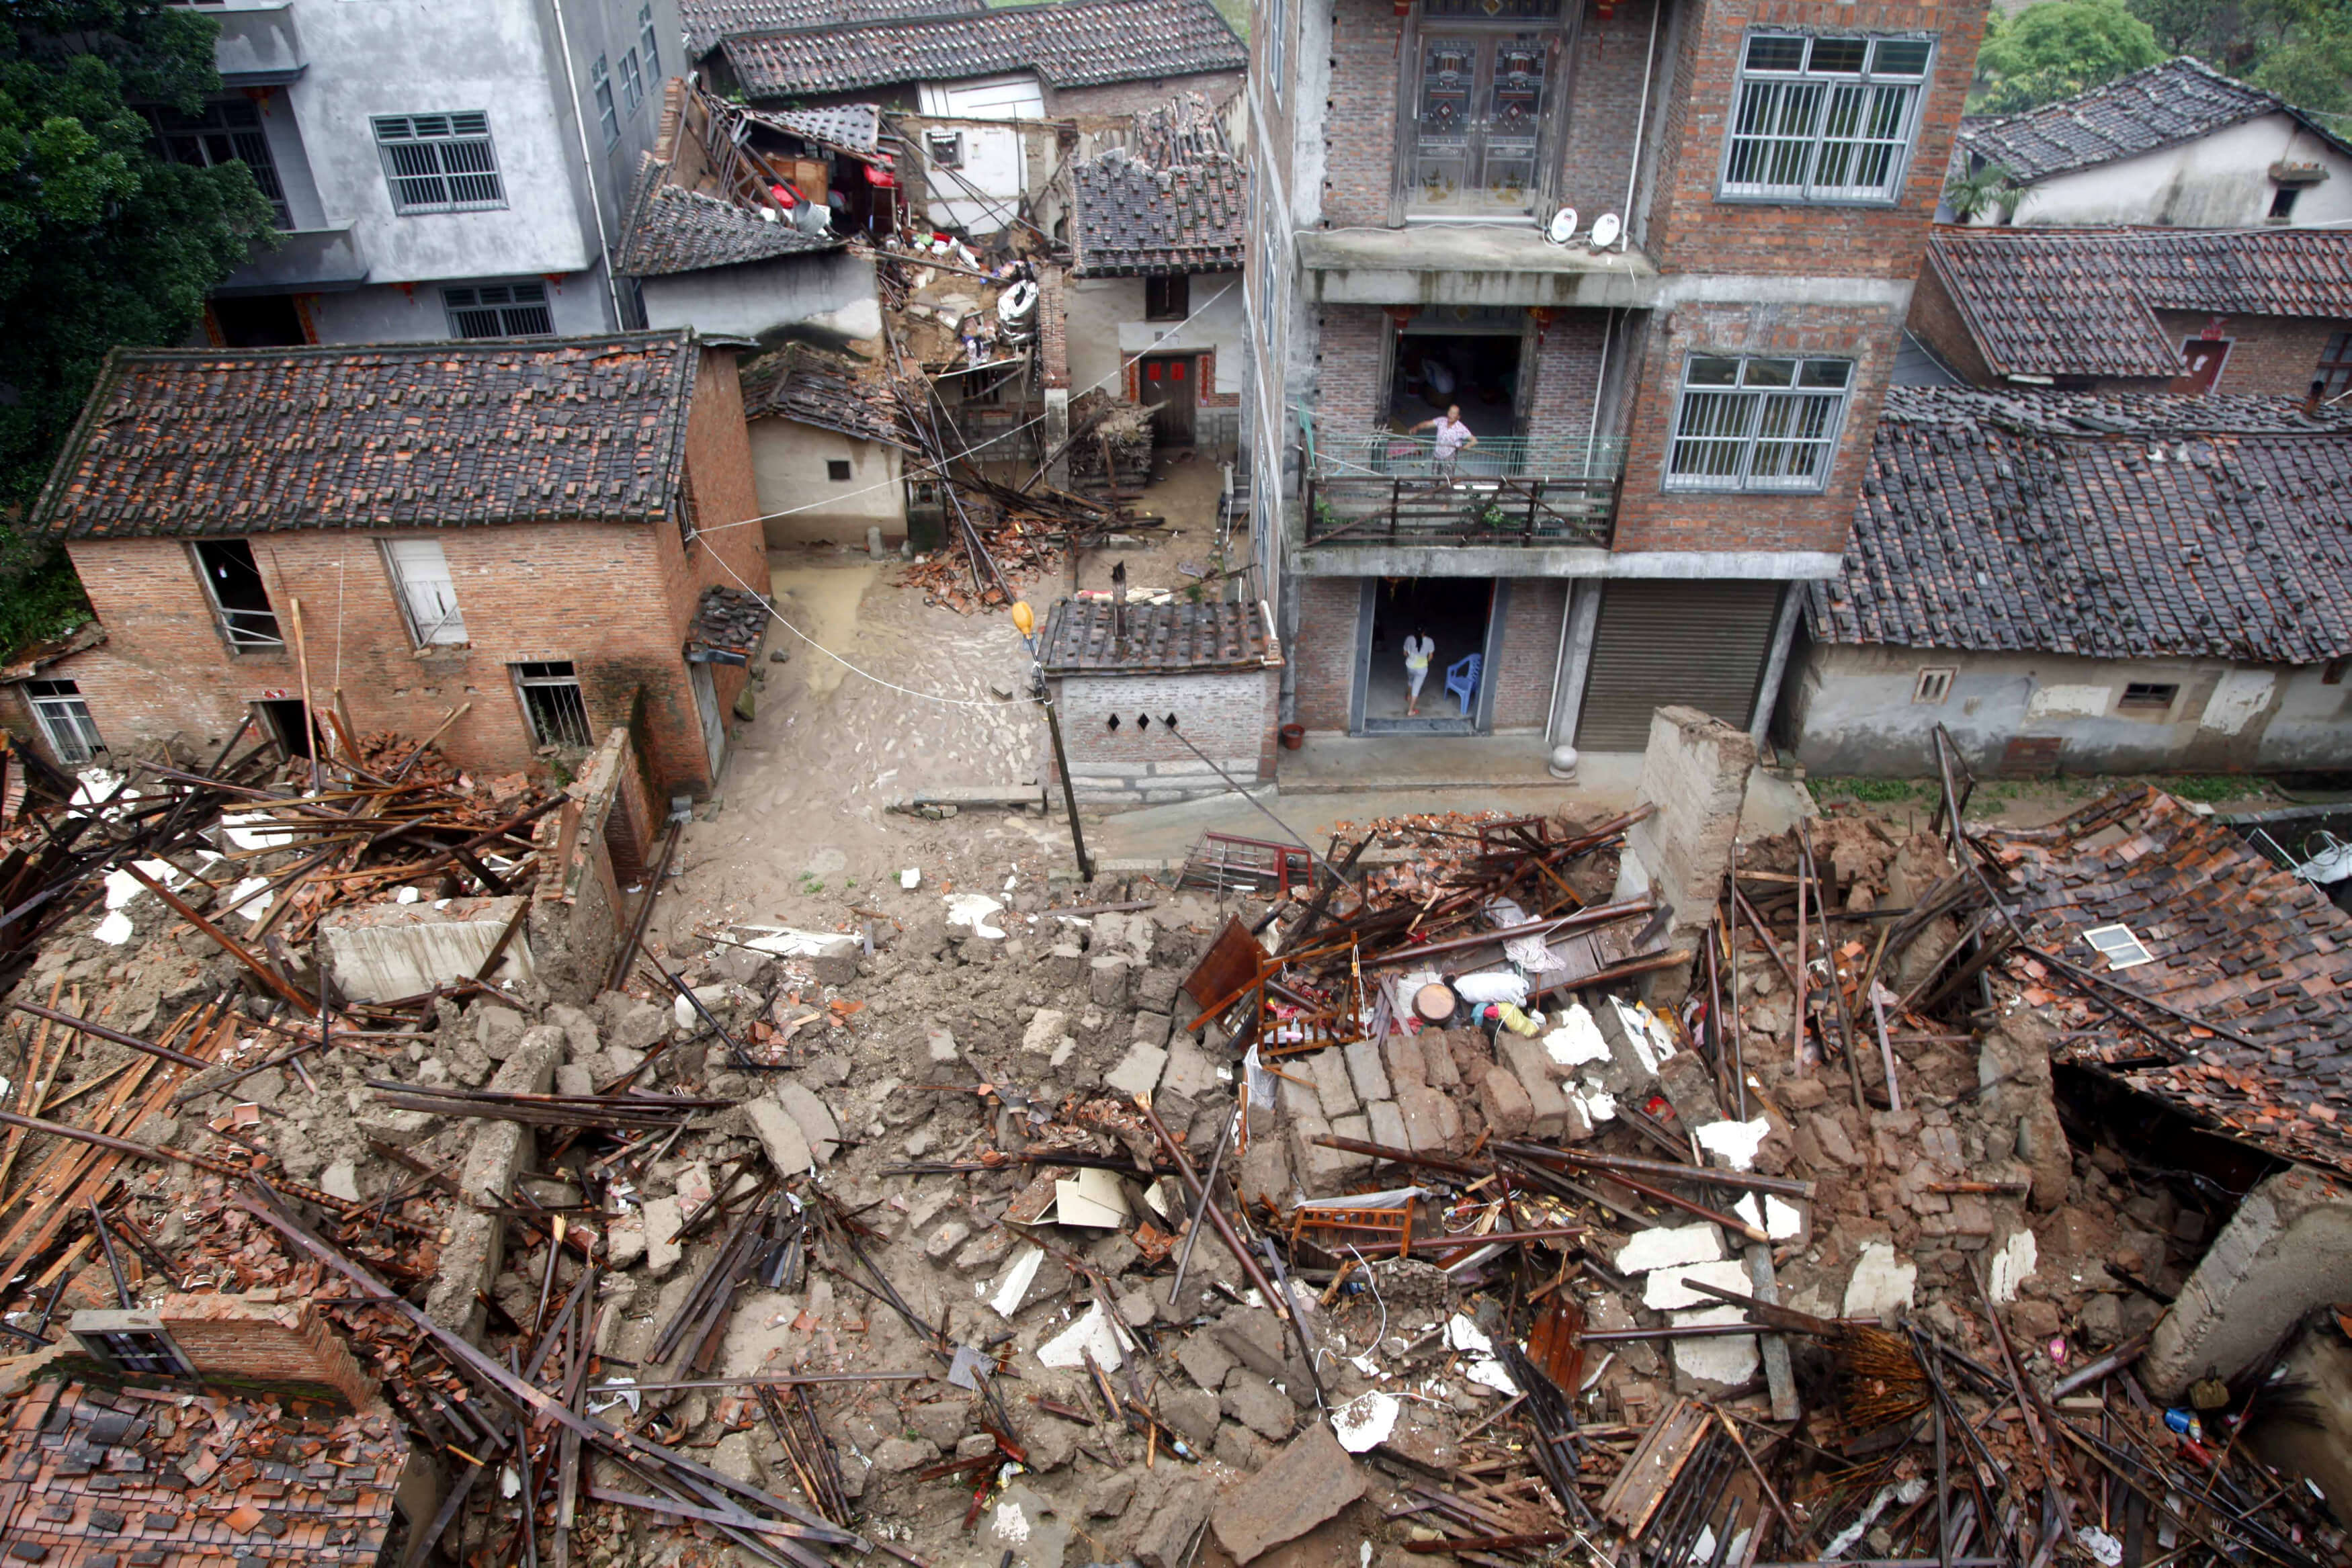 Damaged and collapsed buildings are seen as Typhoon Nepartak brings heavy rainfall in Putian, Fujian Province, China, July 9, 2016. REUTERS/Stringer